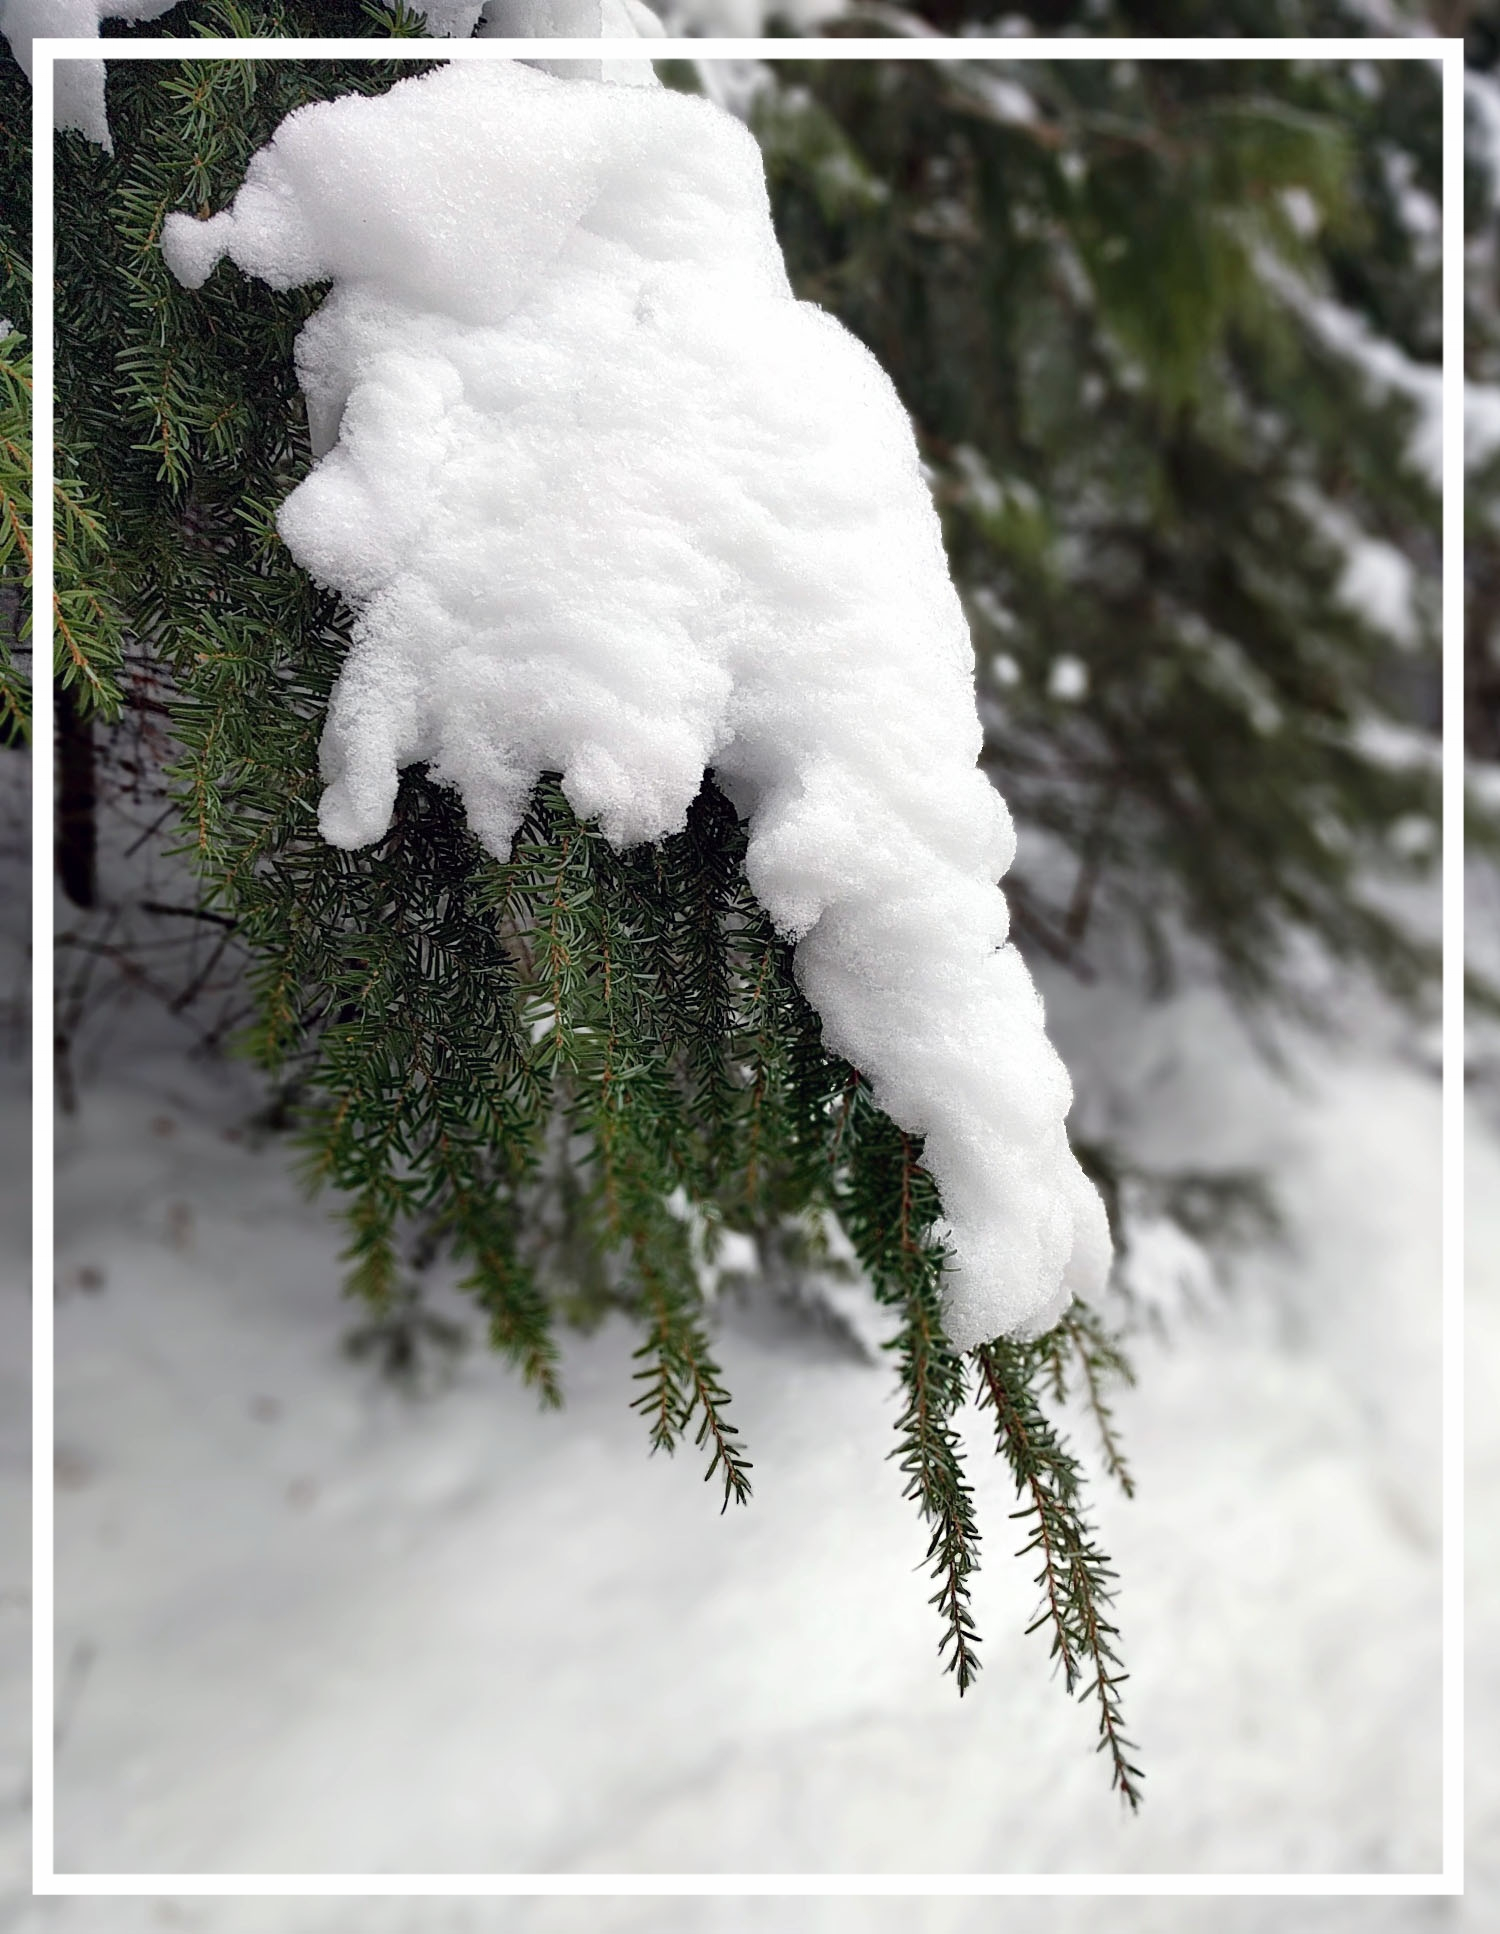 Western hemlock's delicate evergreen foliage provides interest throughout the winter.